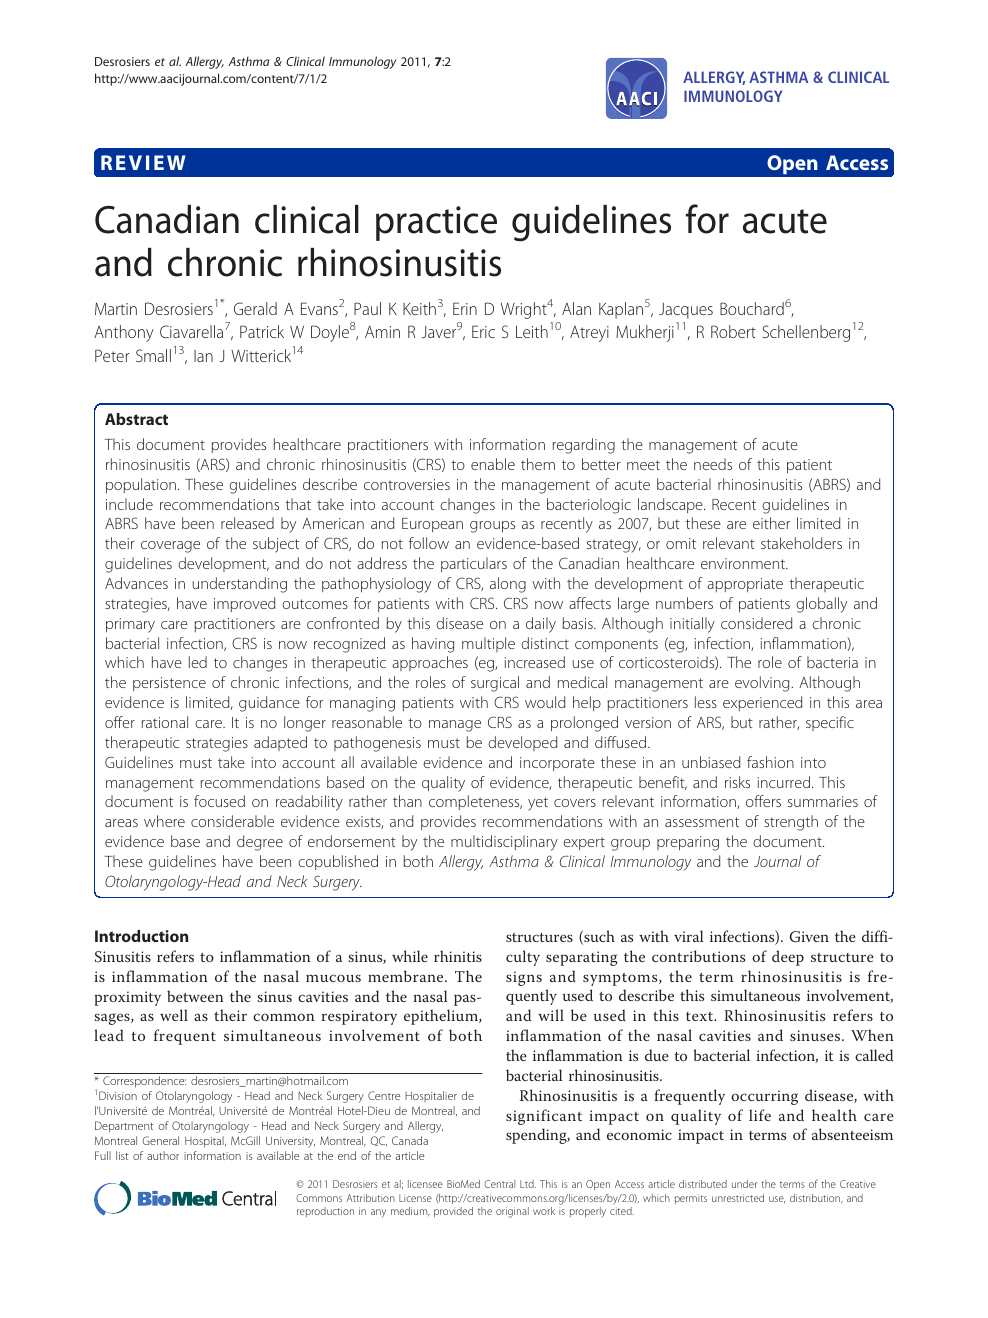 Canadian clinical practice guidelines for acute and chronic